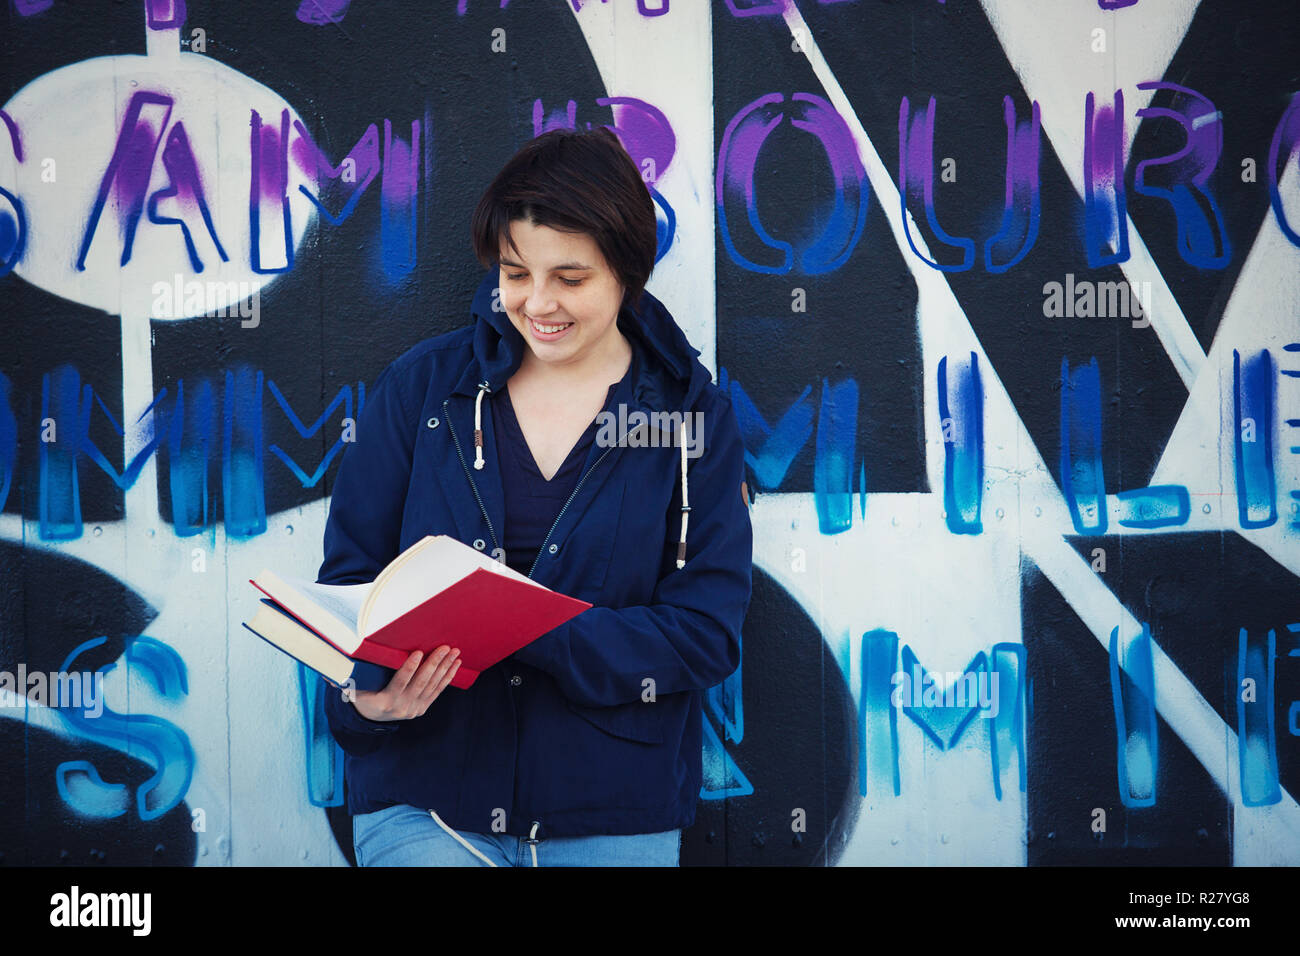 Casual happy woman student reading book, outdoors lifestyle portrait leaning back on graffiti wall background. Education concept, street art. Stock Photo